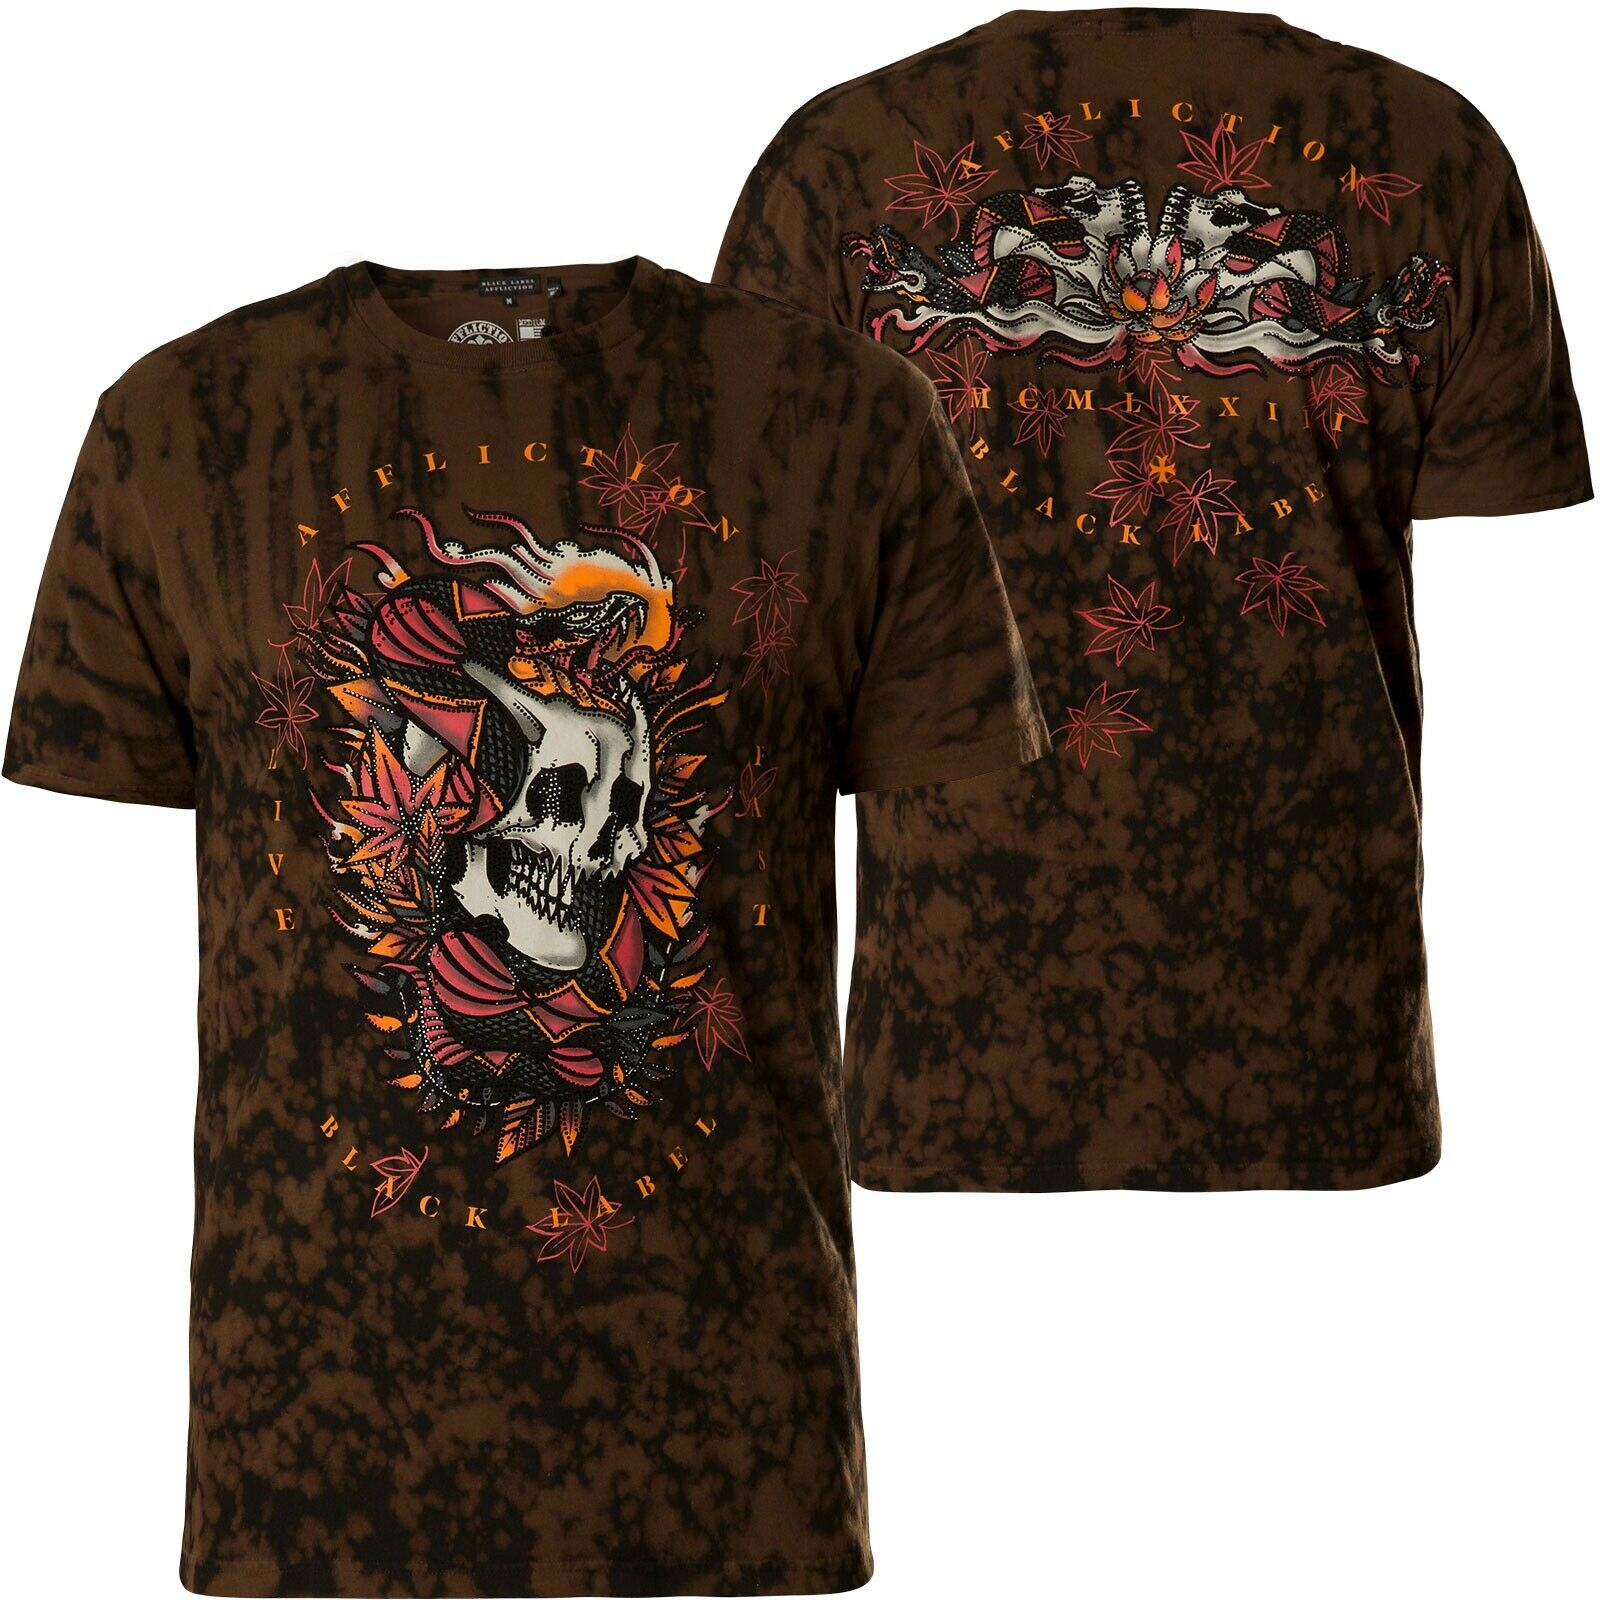 AFFLICTION T-Shirt Firethorn brown T-Shirts